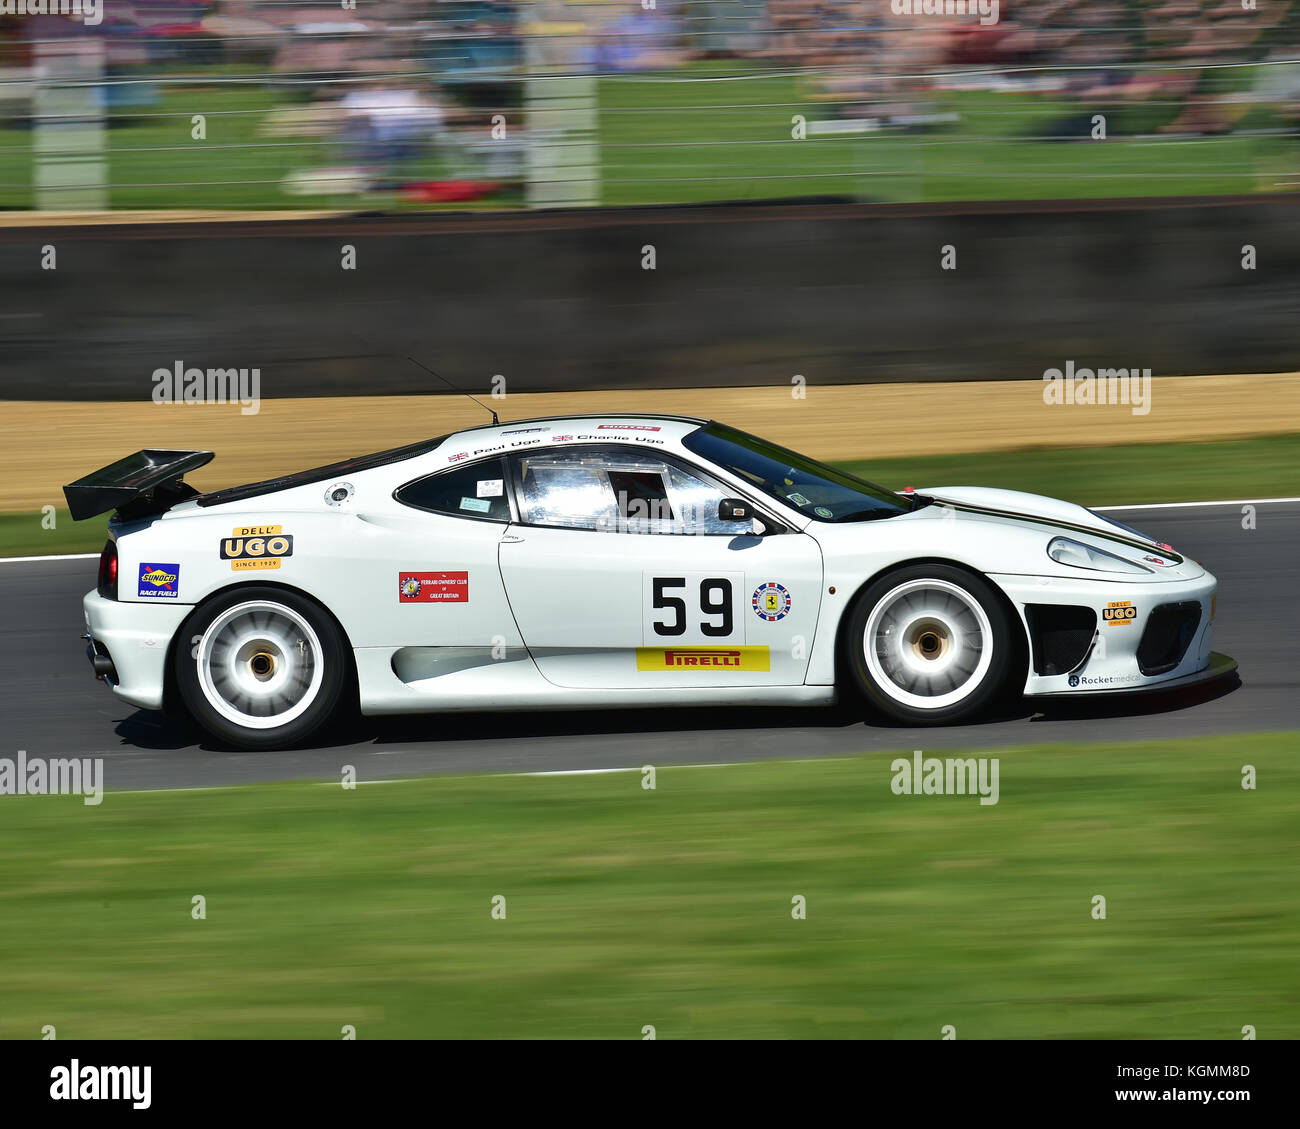 Ferrari 355 Vs 360: Ferrari 360 Stock Photos & Ferrari 360 Stock Images